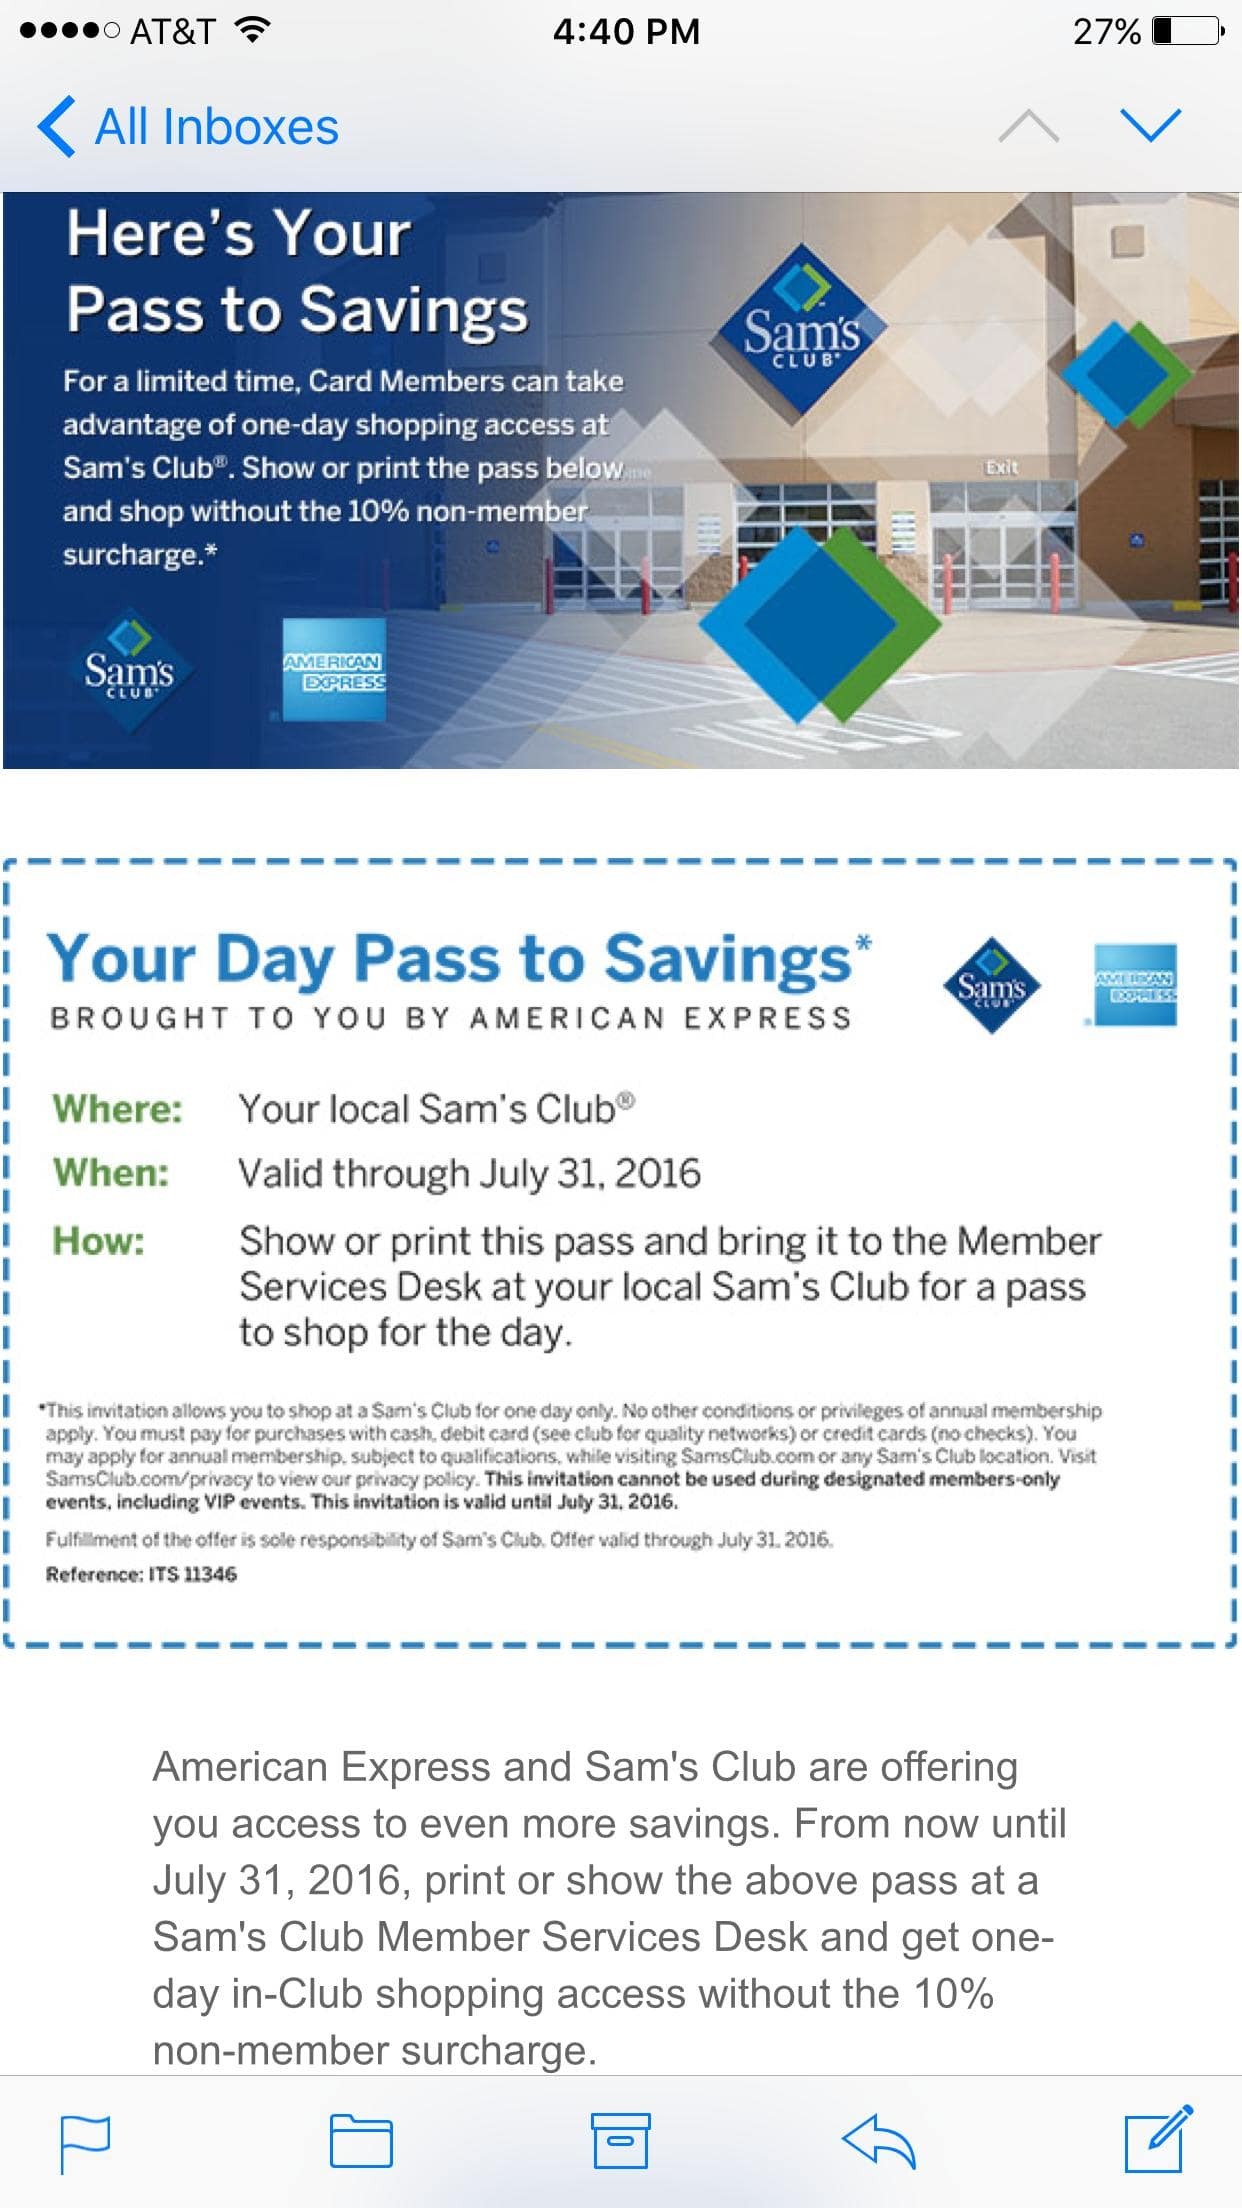 Amex one day pass to sam's club for non members